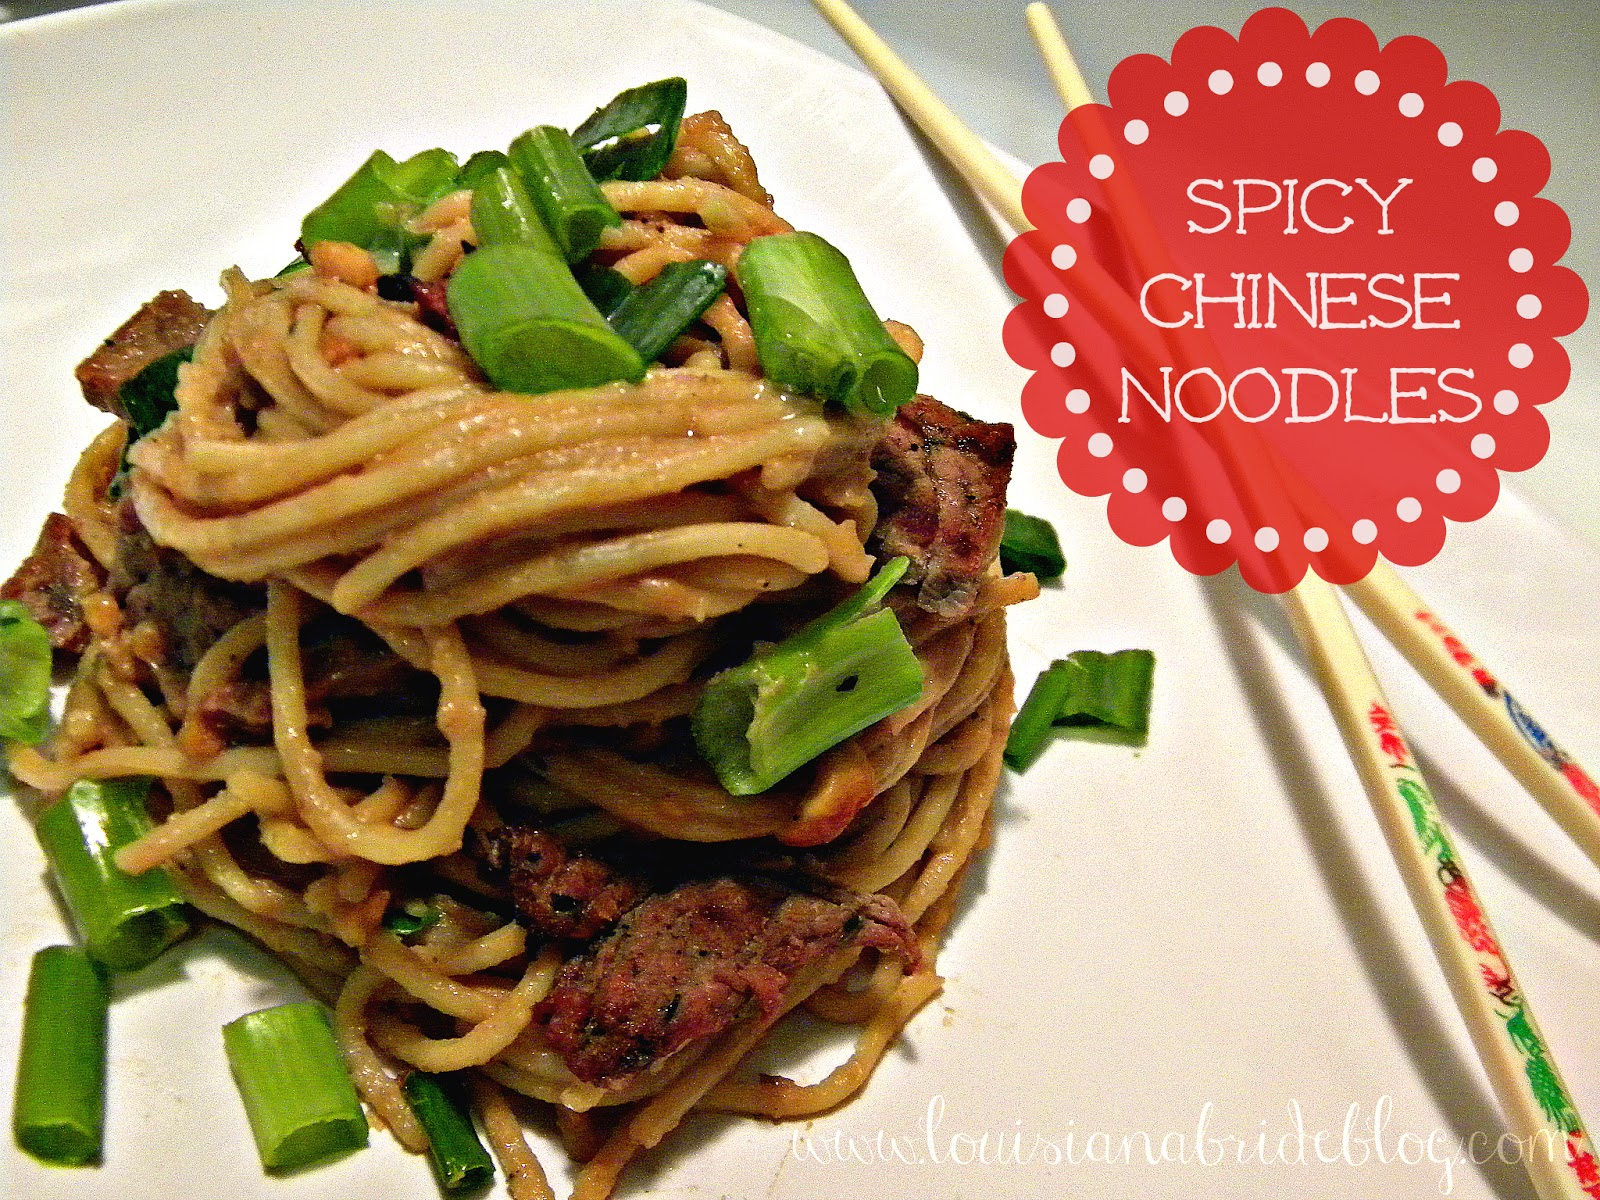 Spicy Chinese Noodles with Asian Beef